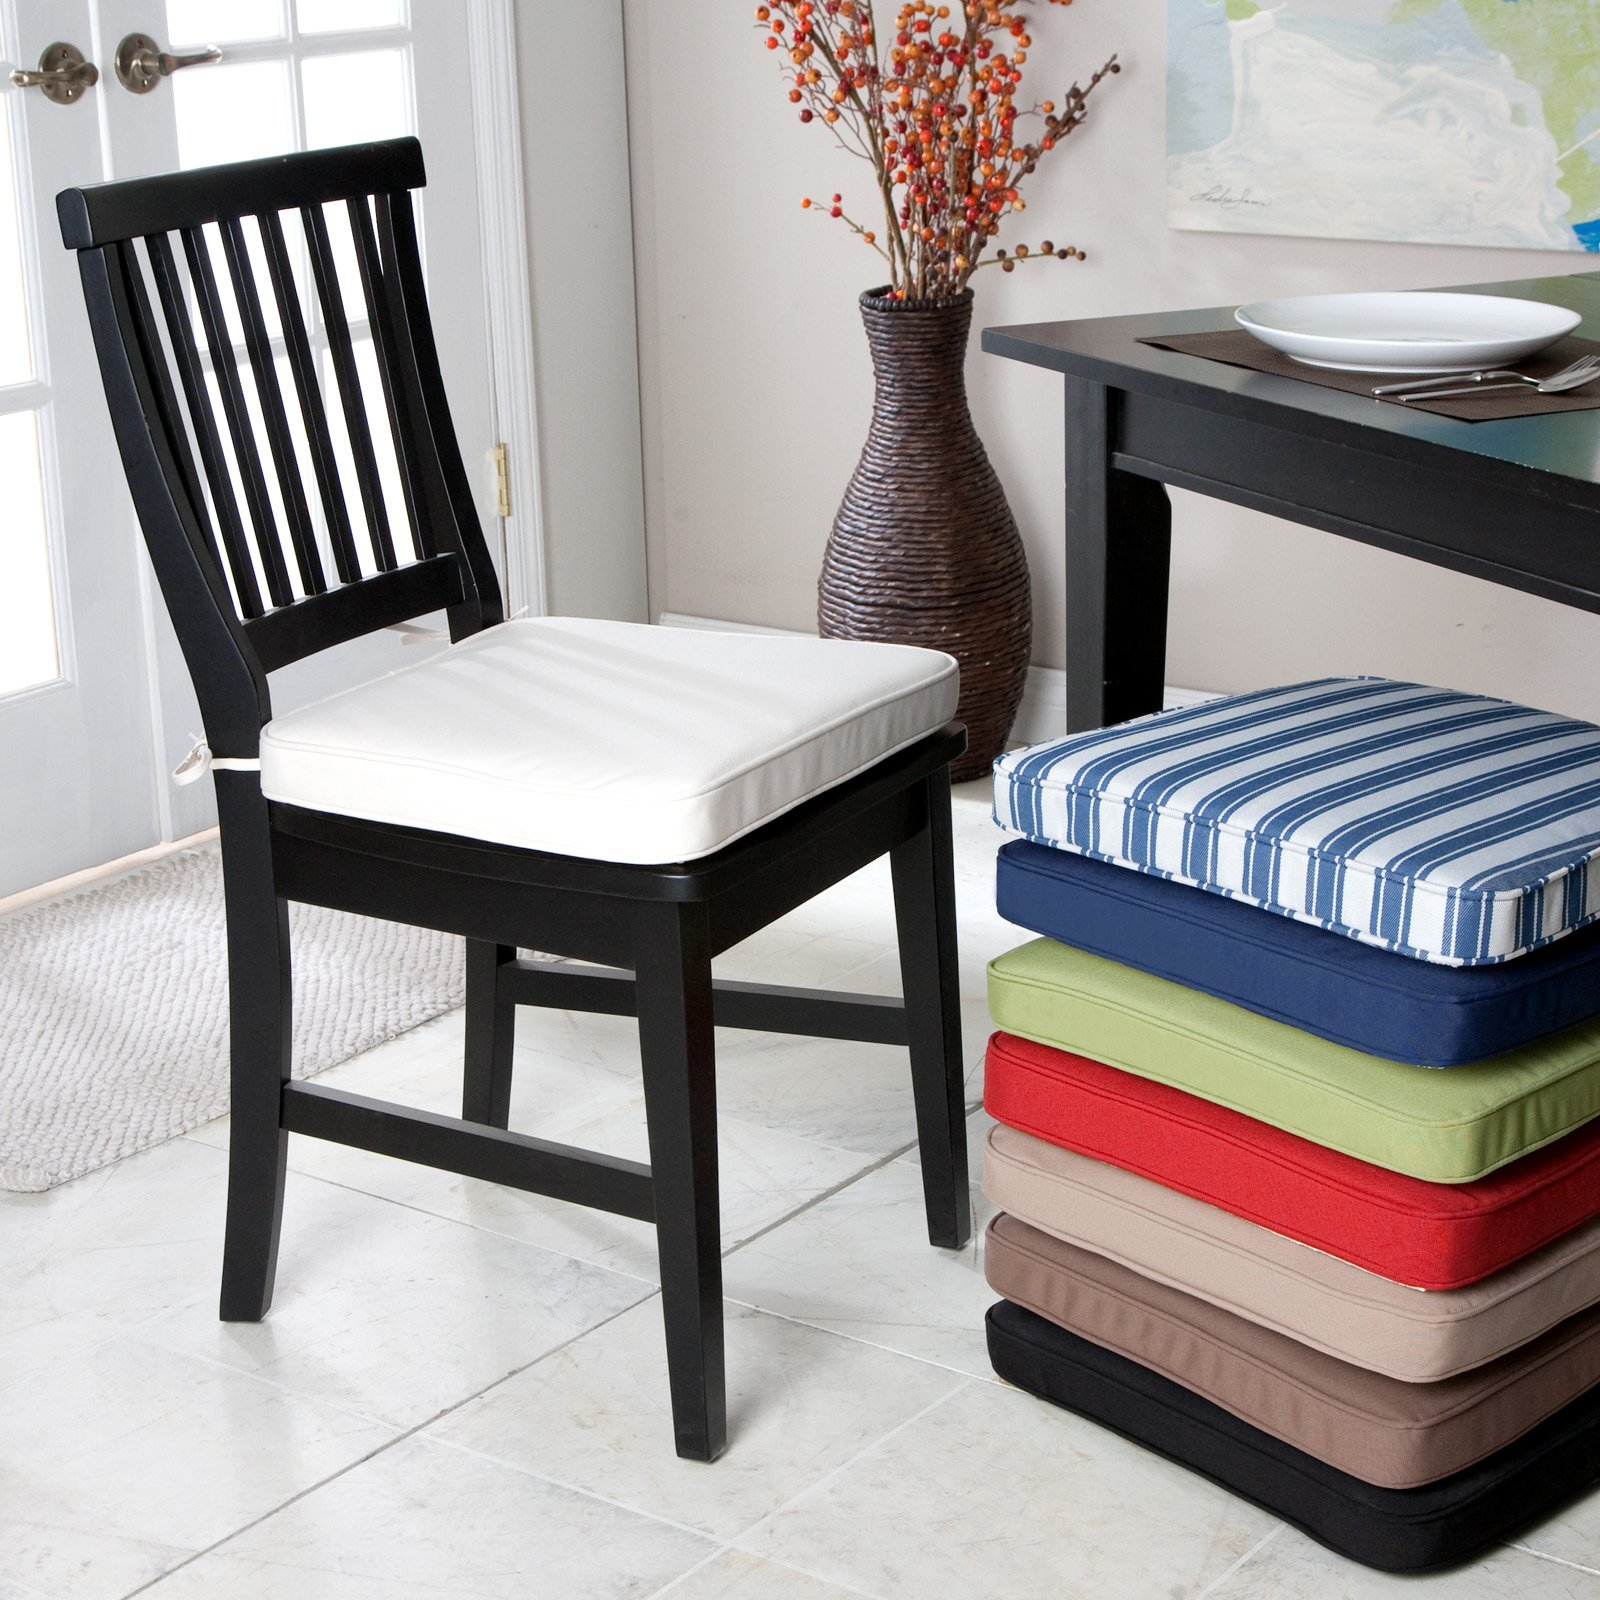 Dining Room Chair Pillows For Chairs